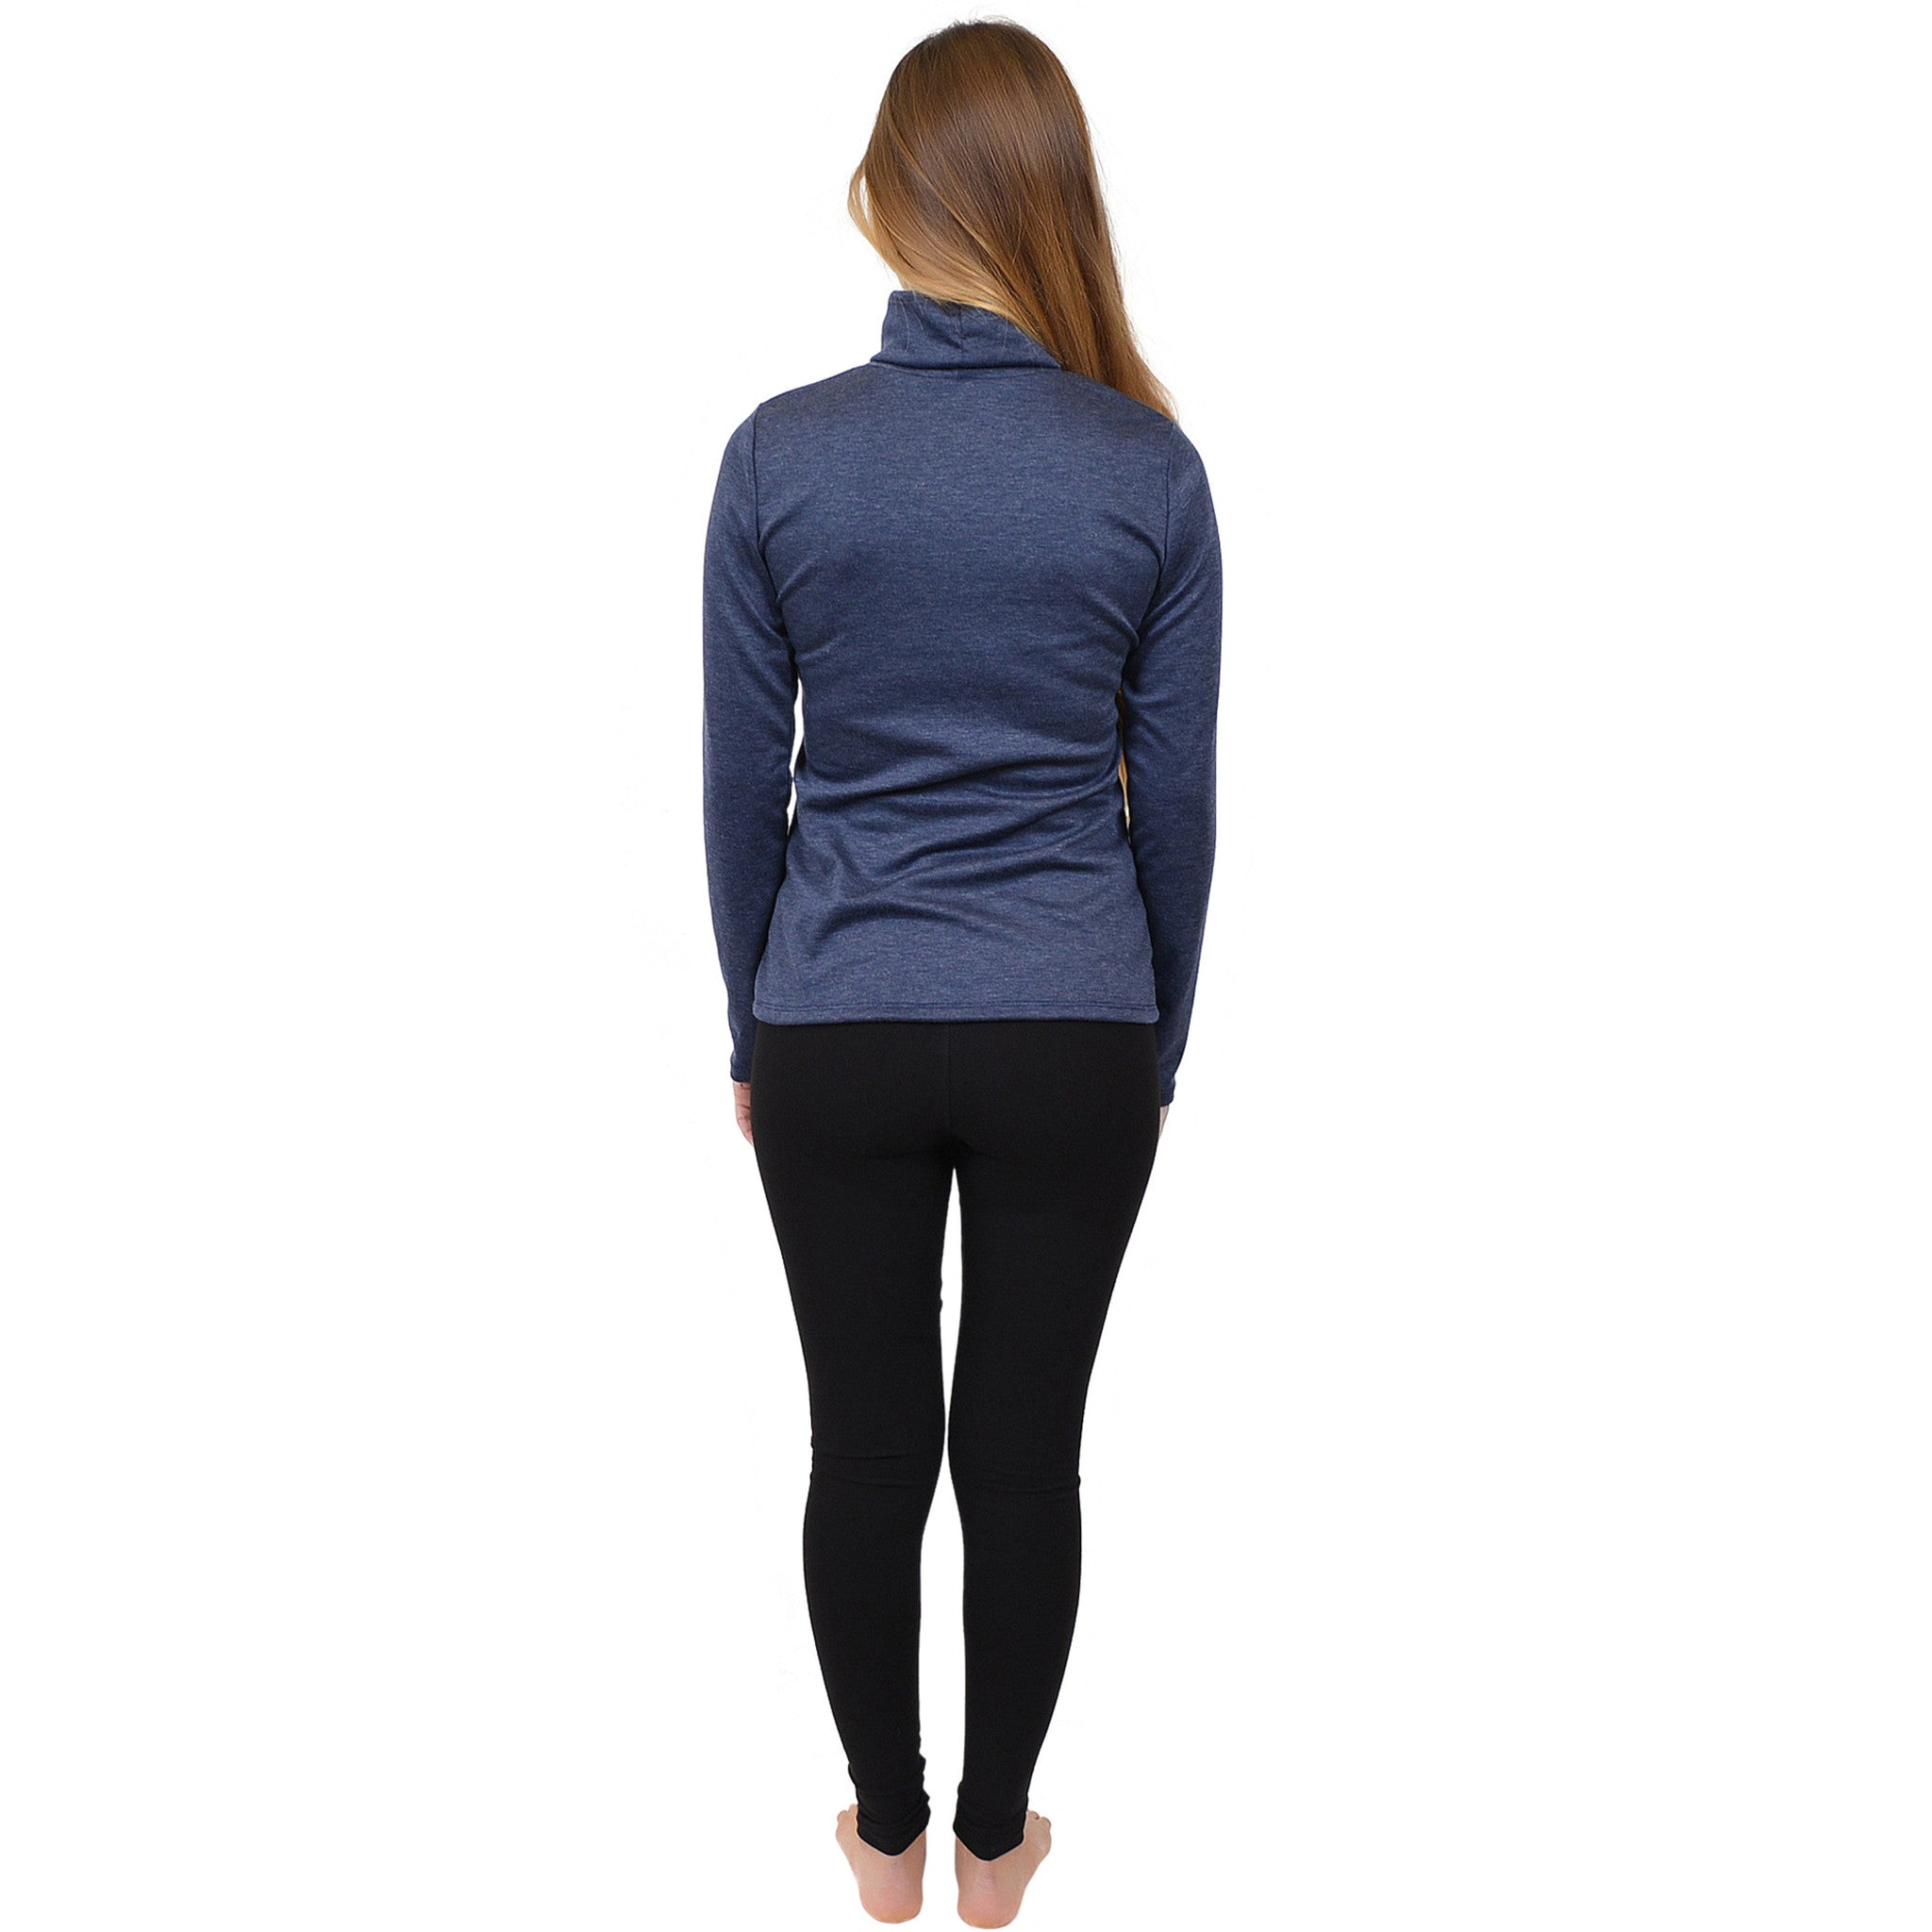 Women's Warm Long Sleeve Turtleneck Top